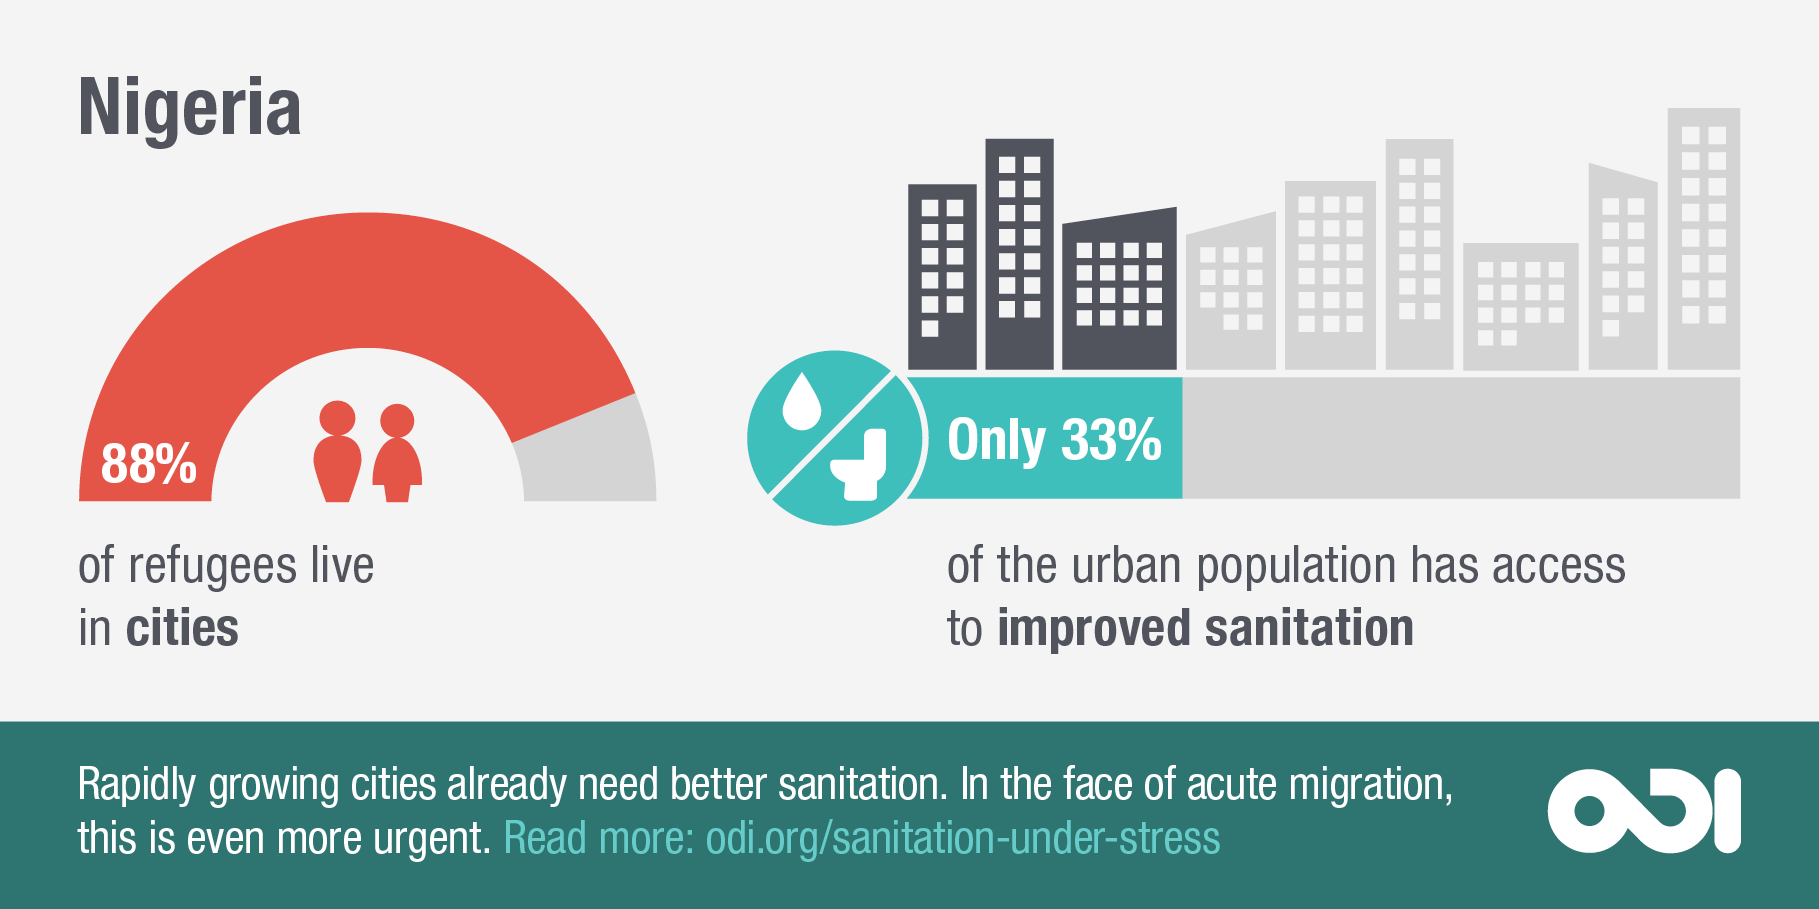 Infographic: rapidly growing cities need better sanitation (Nigeria)